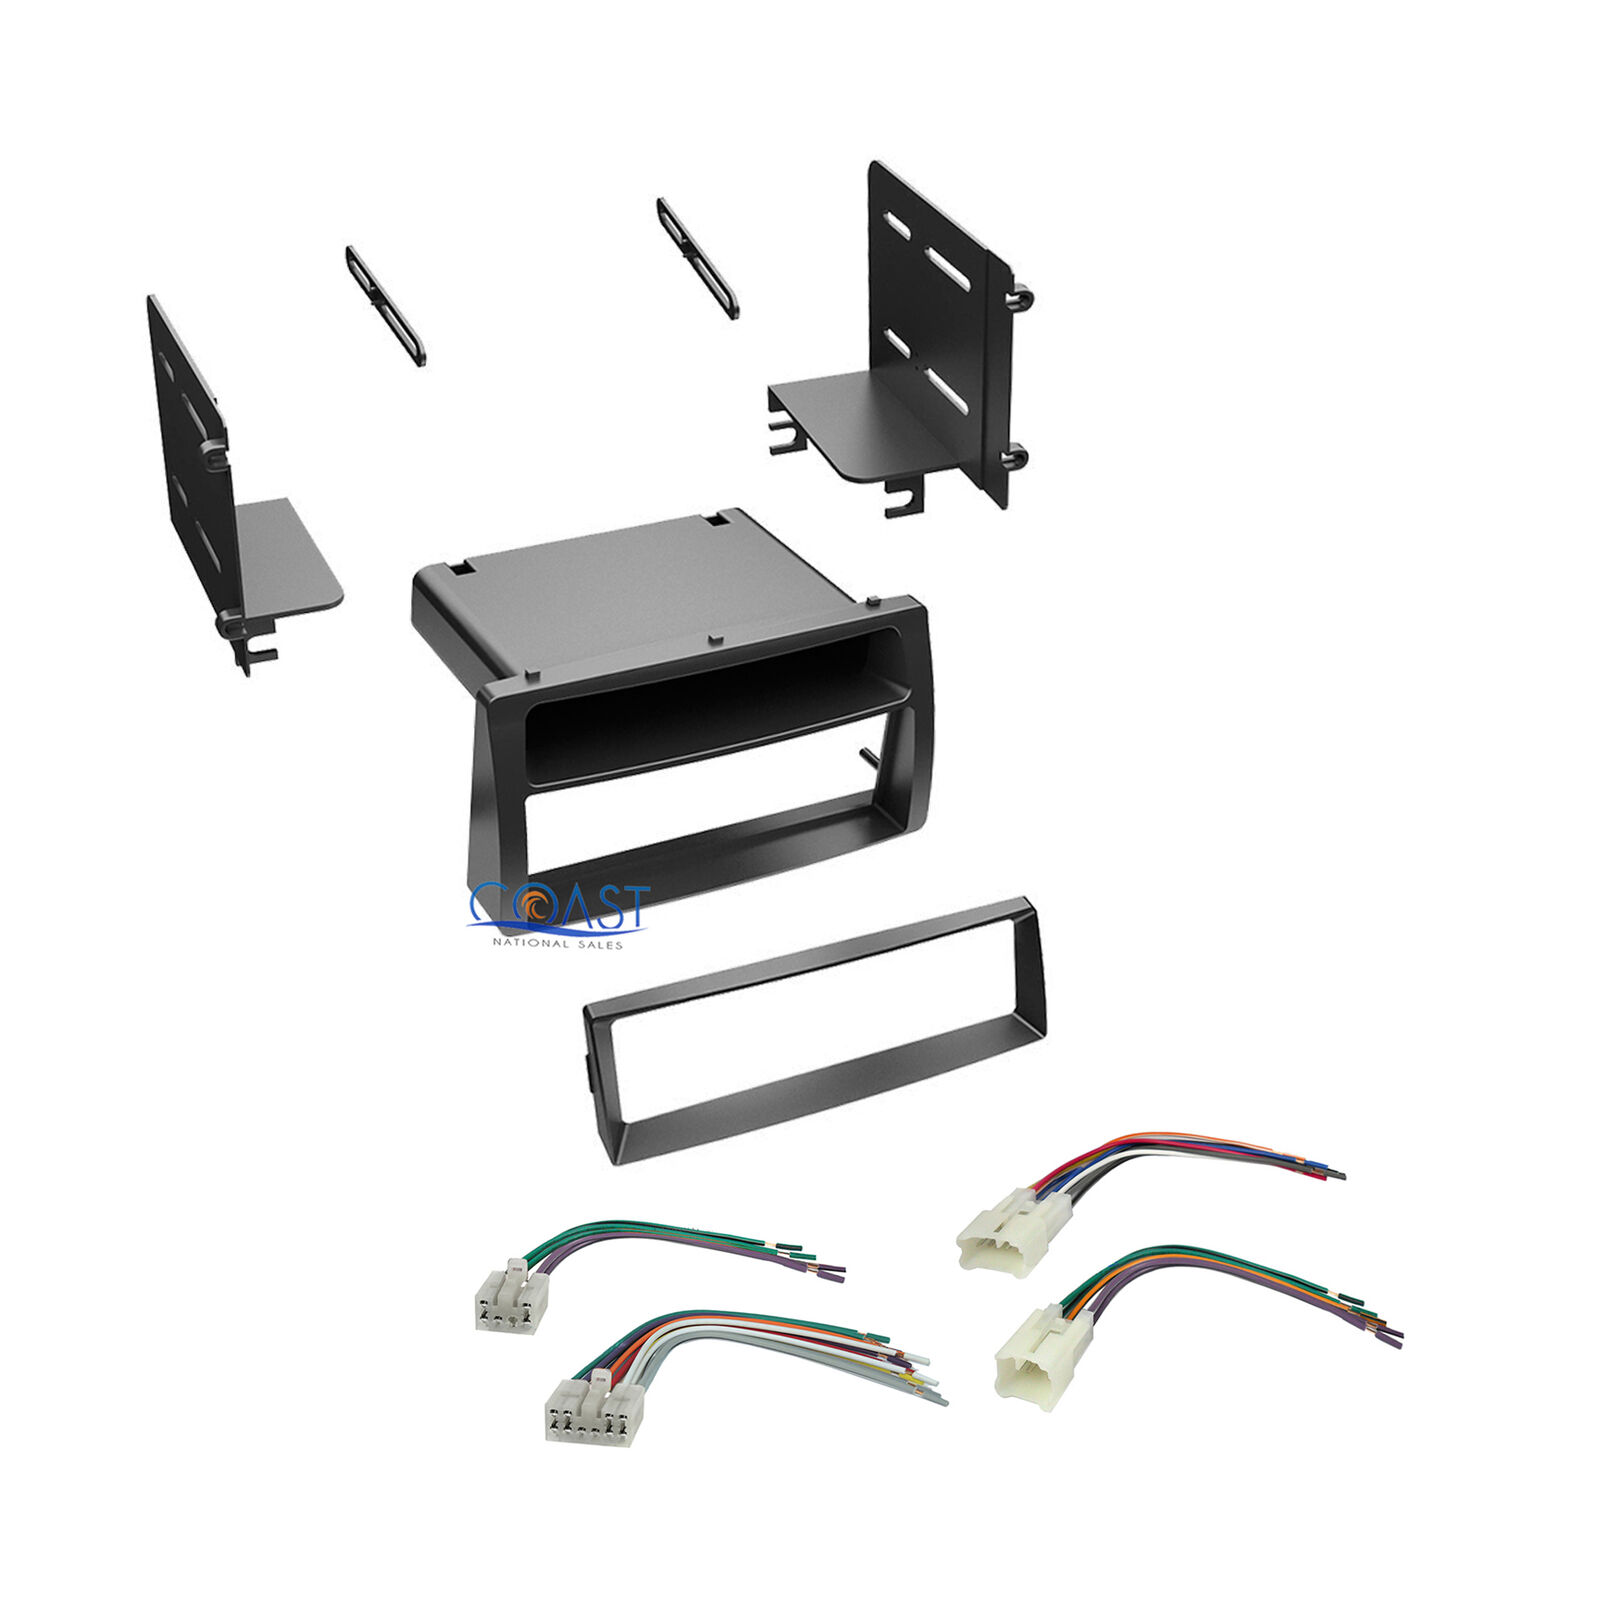 Car Stereo Single DIN Dash Kit + Wiring Harness for 2003-2008 Toyota Corolla  1 of 3FREE Shipping See More